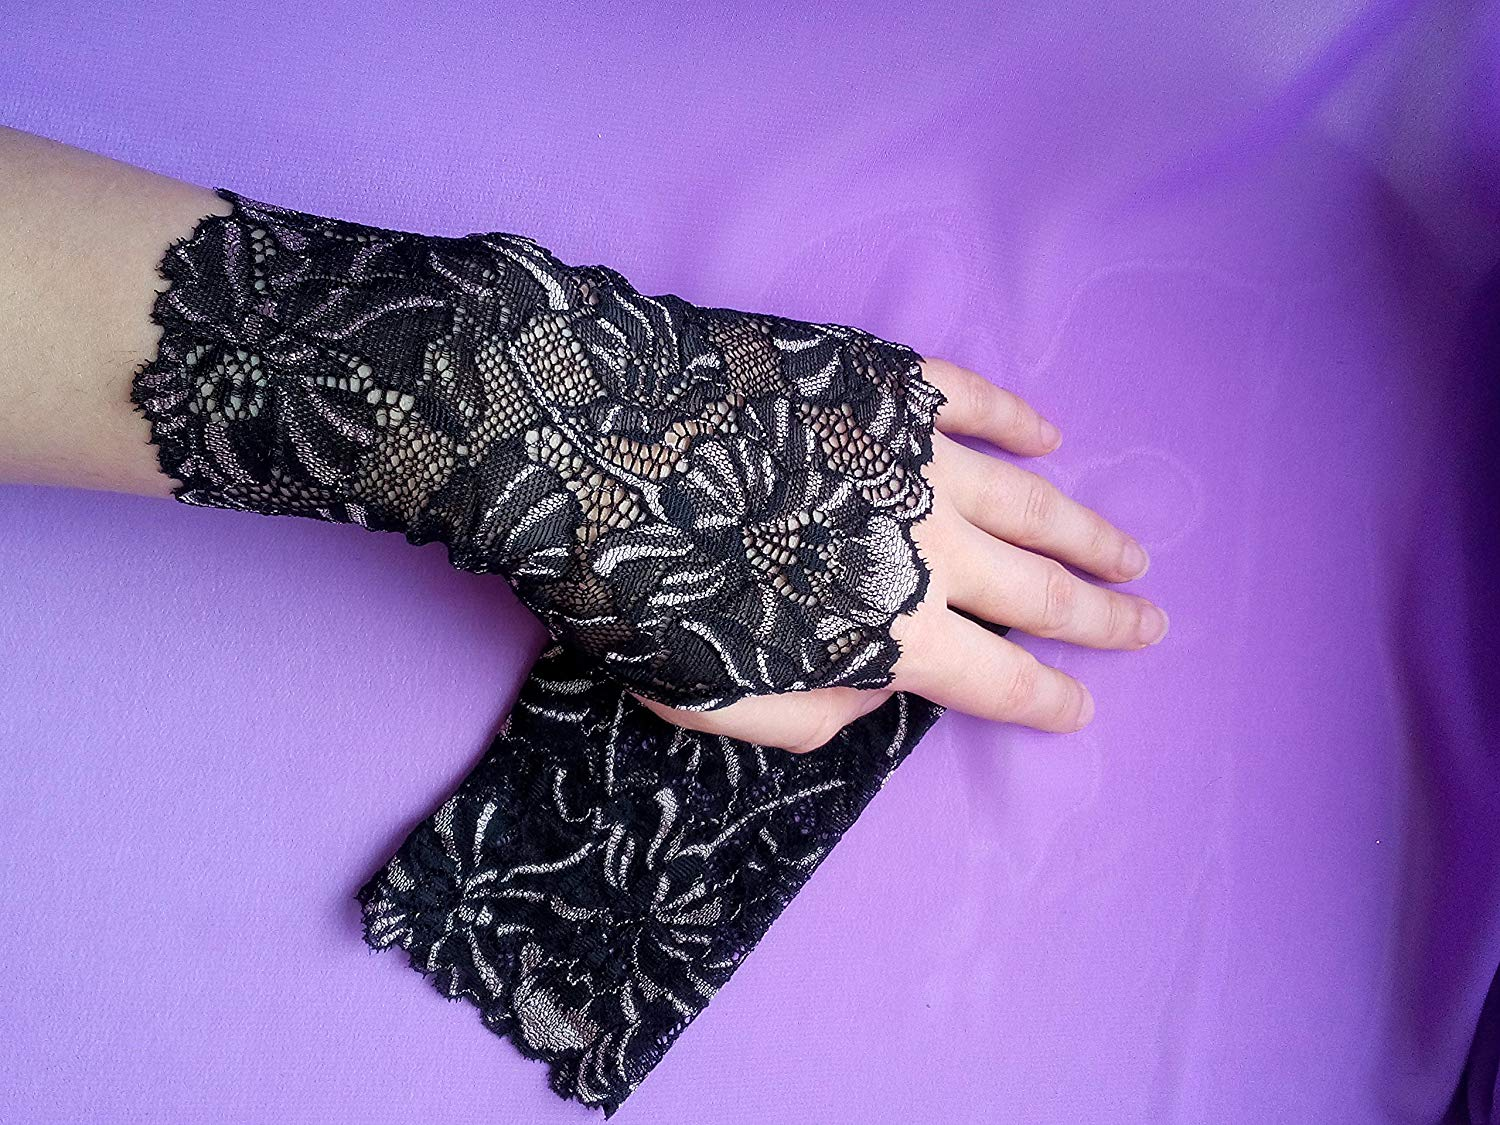 Black and Beige Lace Fingerless Gloves / Burlesque / Gothic / Steampunk / Caberet / Bohemian / Elegant / Romantic / Vintage / Victorian